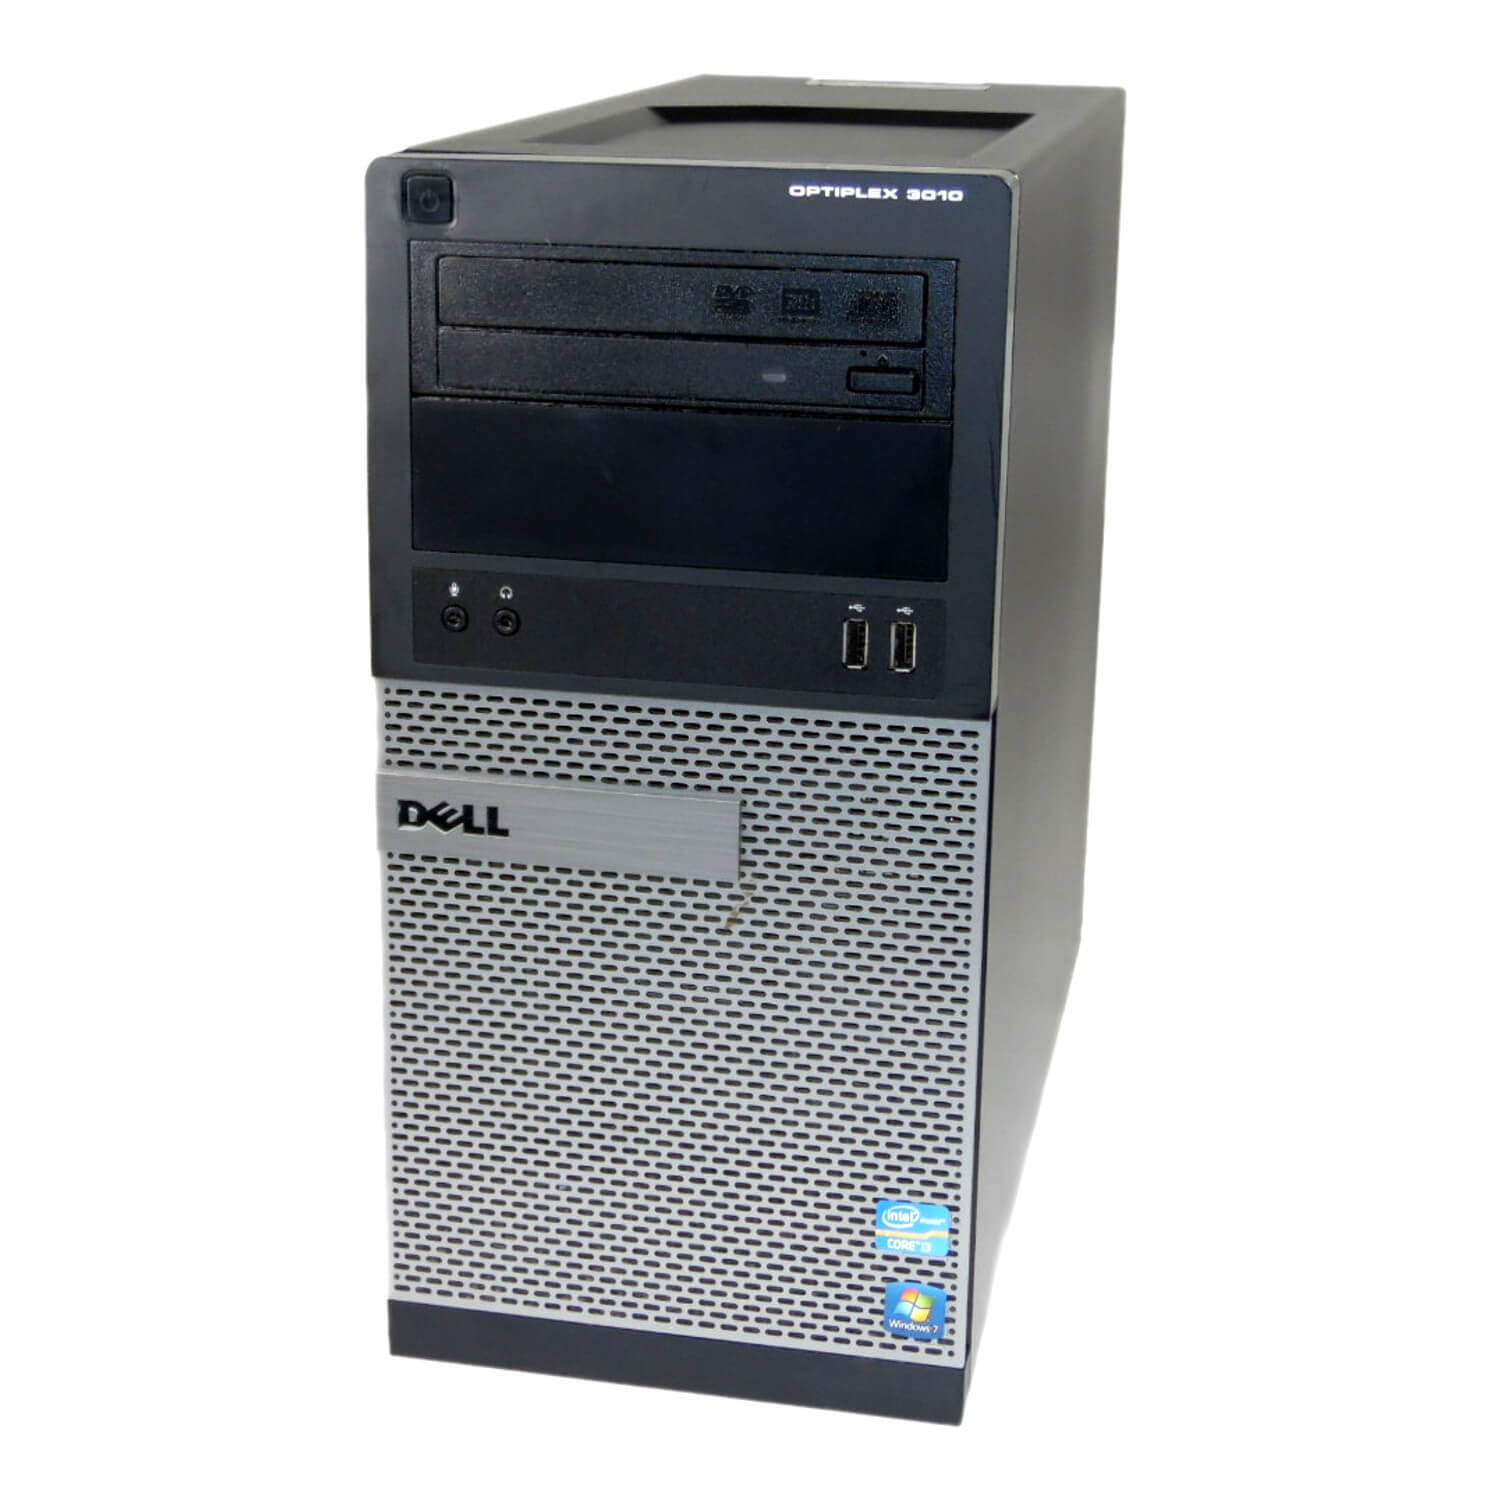 DELL 3010 TOWER I3-3220 3,3 / 4096 MB DDR3 / 500 GB / DVD-RW / WINDOWS 10 PRO